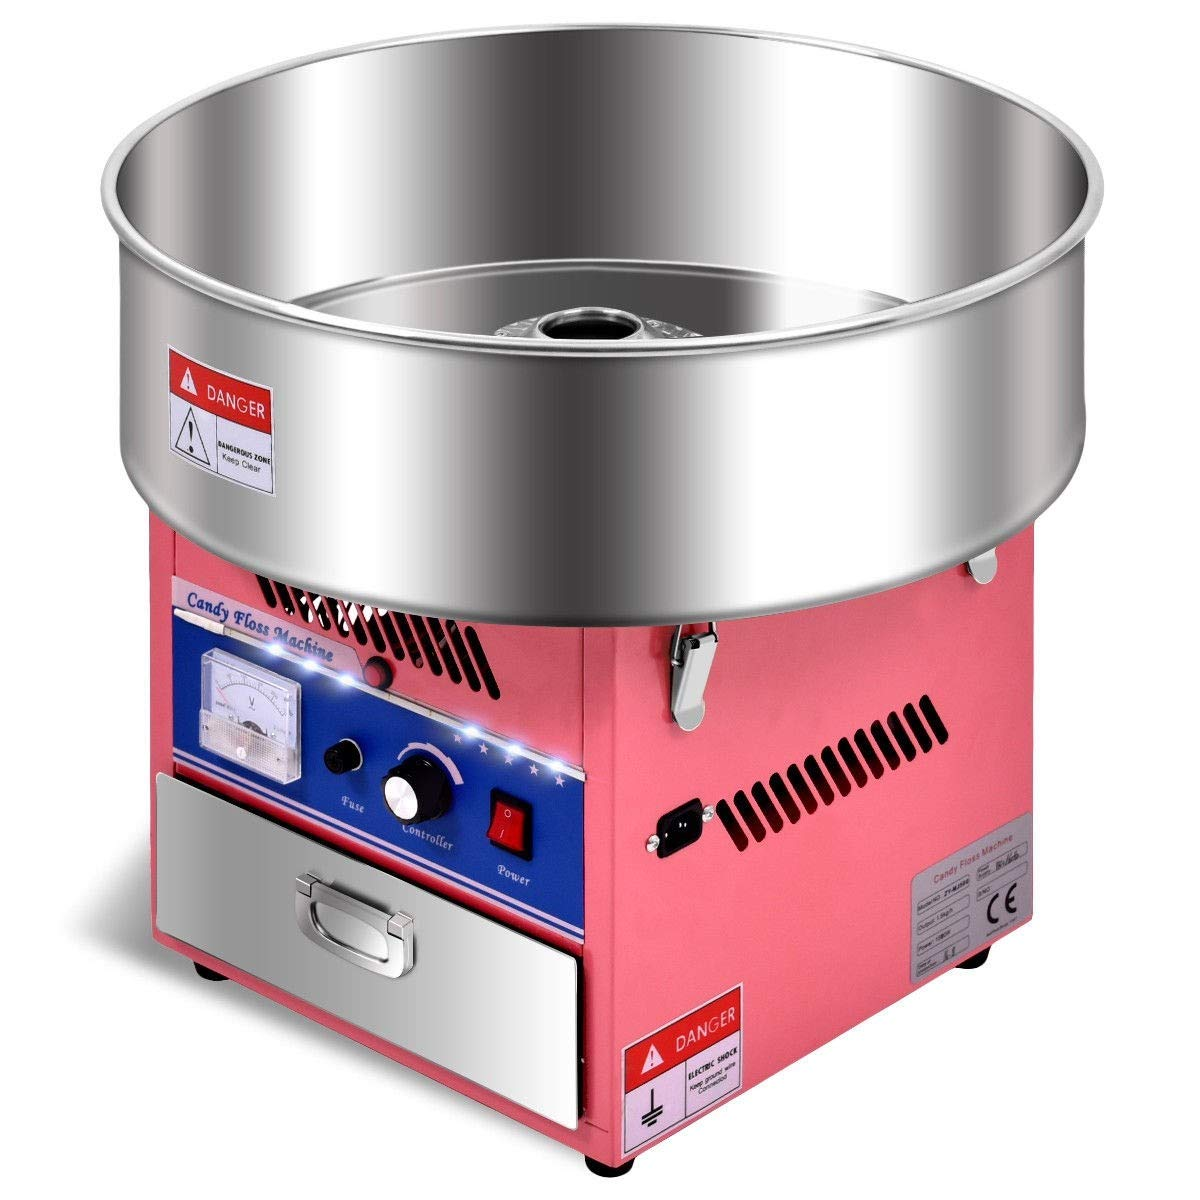 Cotton Candy Machine, Pink Electric Cotton Candy Machine by MD Group (Image #1)